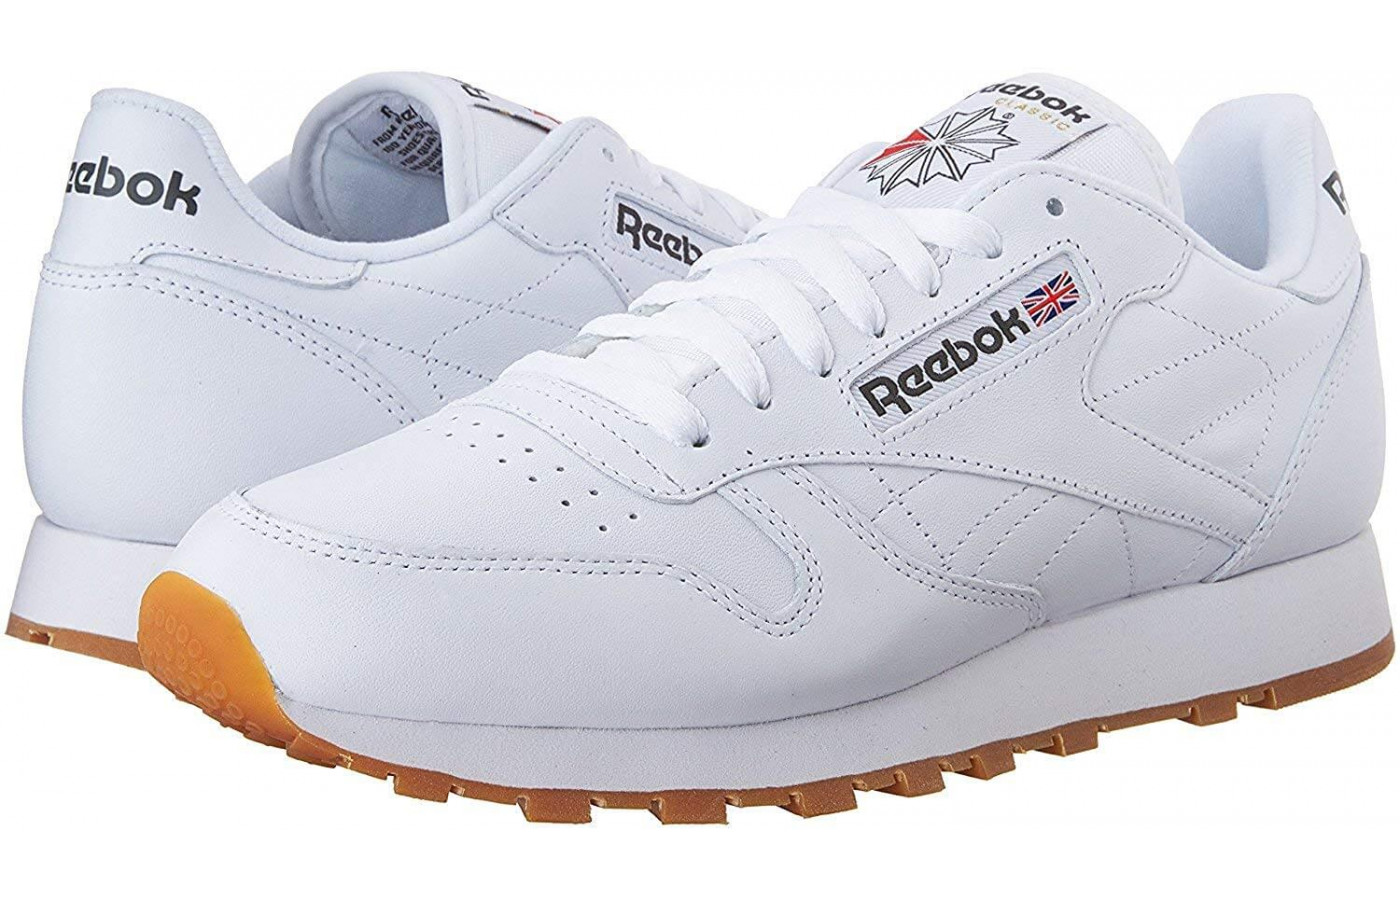 c2ce7ef71e06 Reebok Classic Leather Review - Buy or Not in Apr 2019